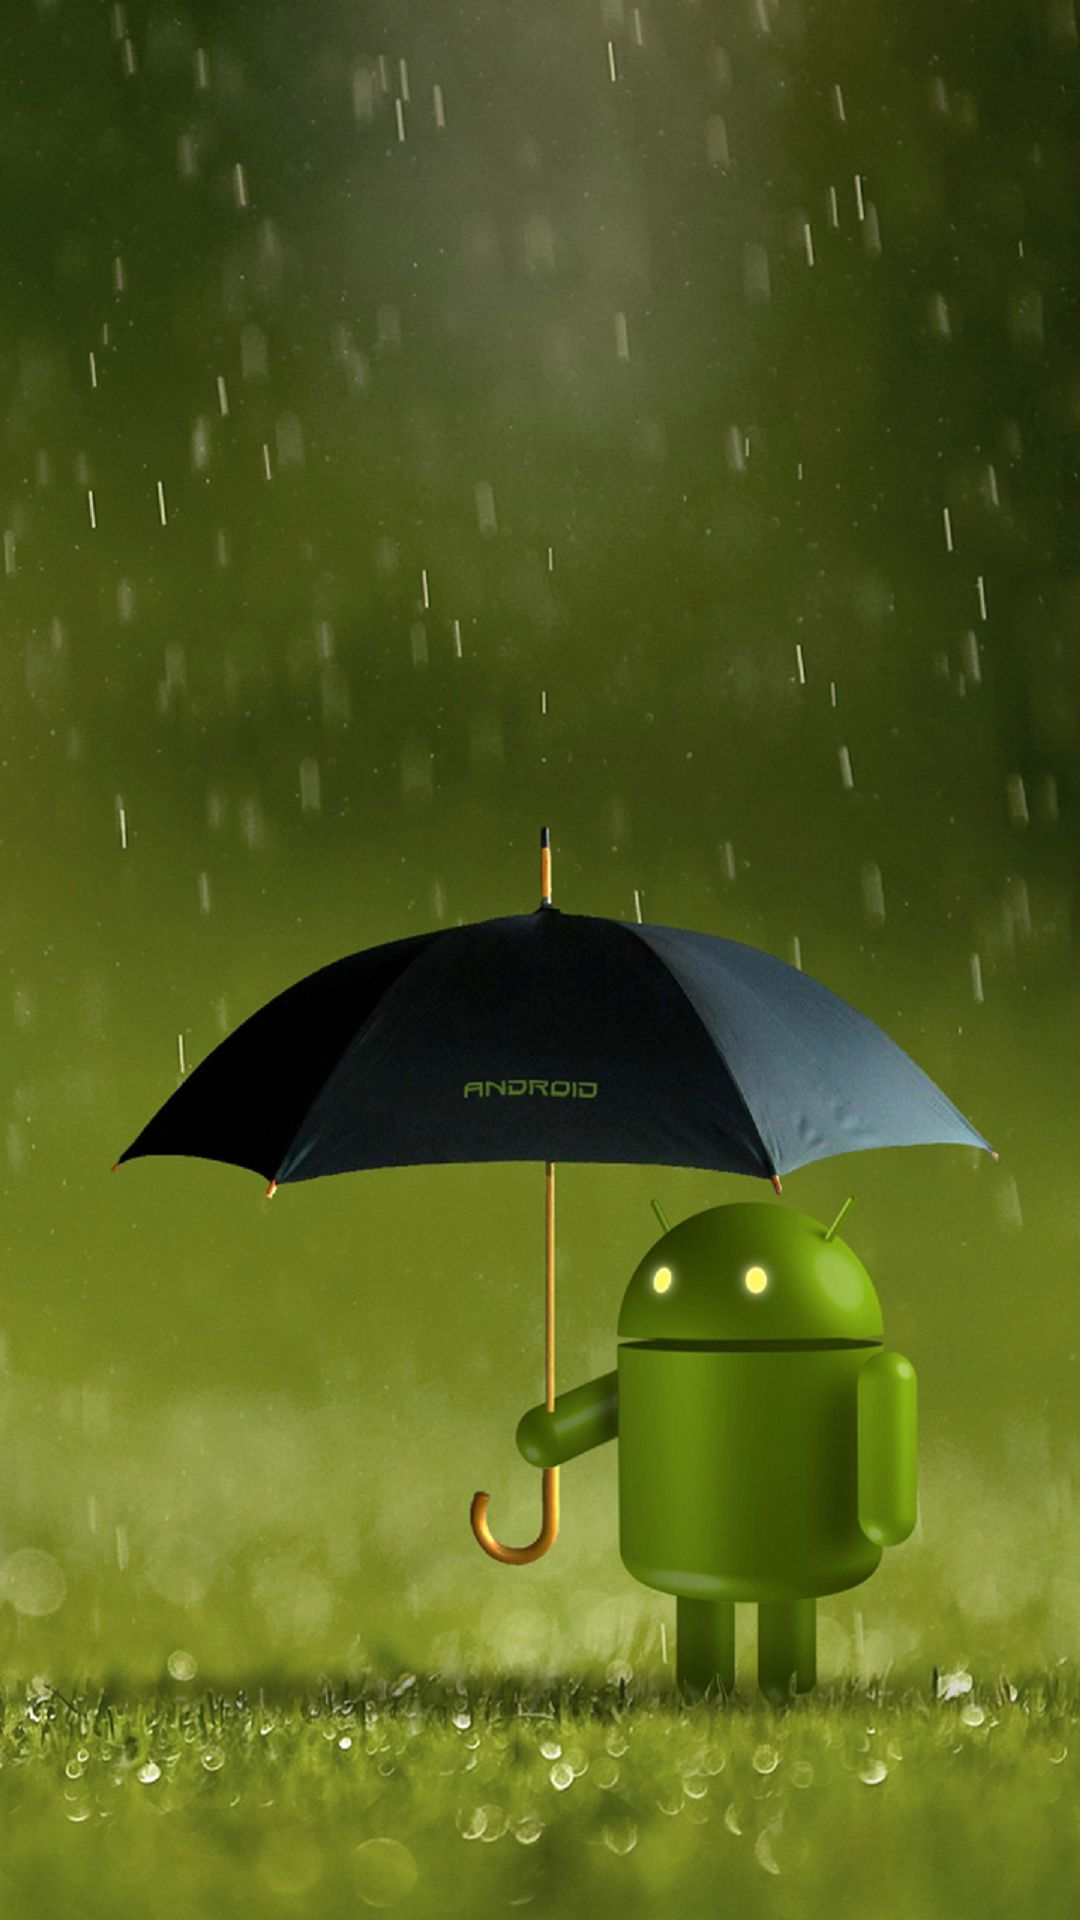 Android Robot Doll Rain